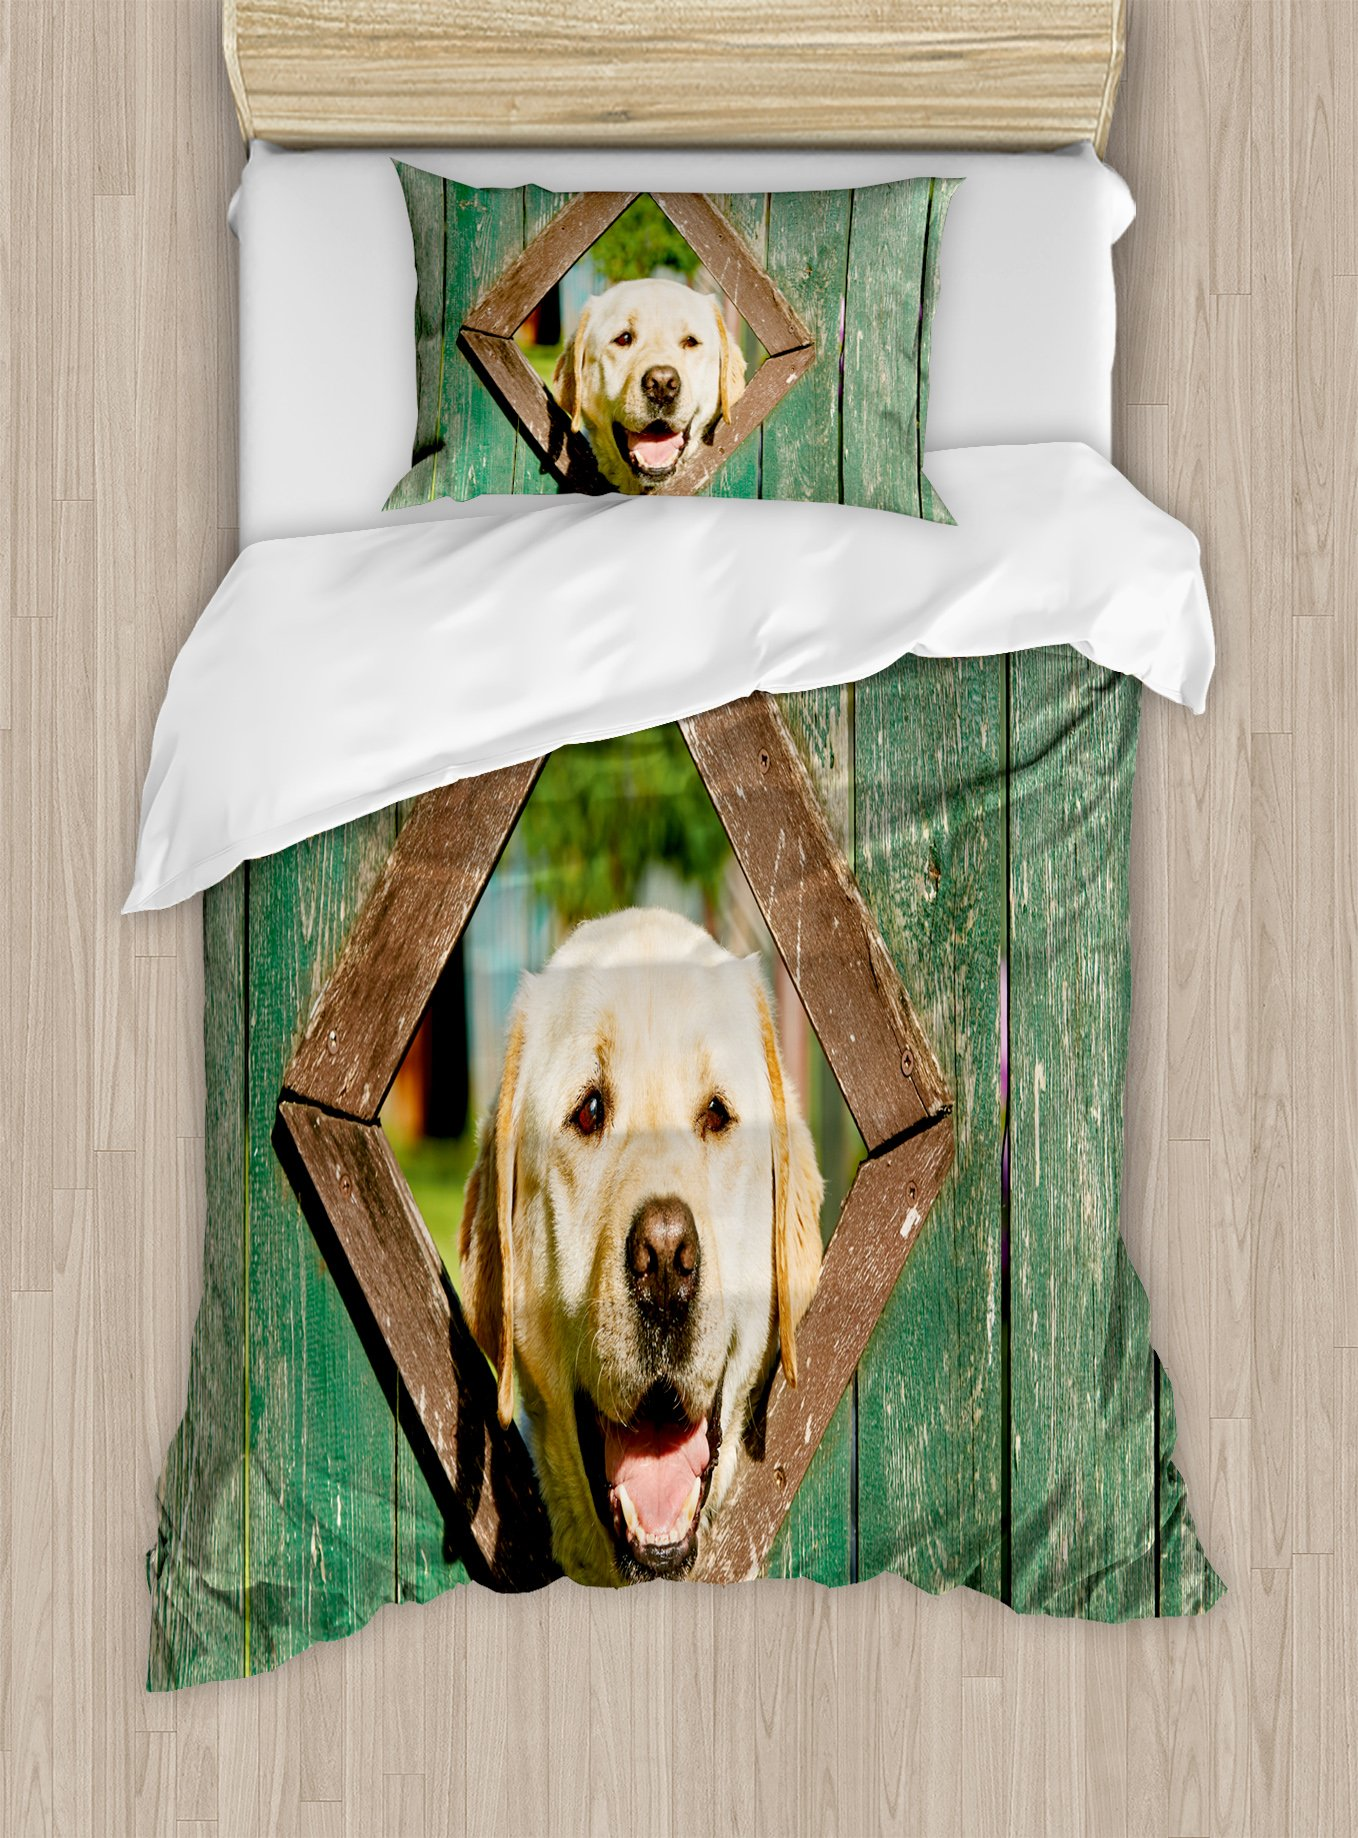 Ambesonne Funny Duvet Cover Set Twin Size, Curious Dog is Looking from Window in Old Rustic Wooden Fence Cheerful Print, Decorative 2 Piece Bedding Set with 1 Pillow Sham, Forest Green Brown